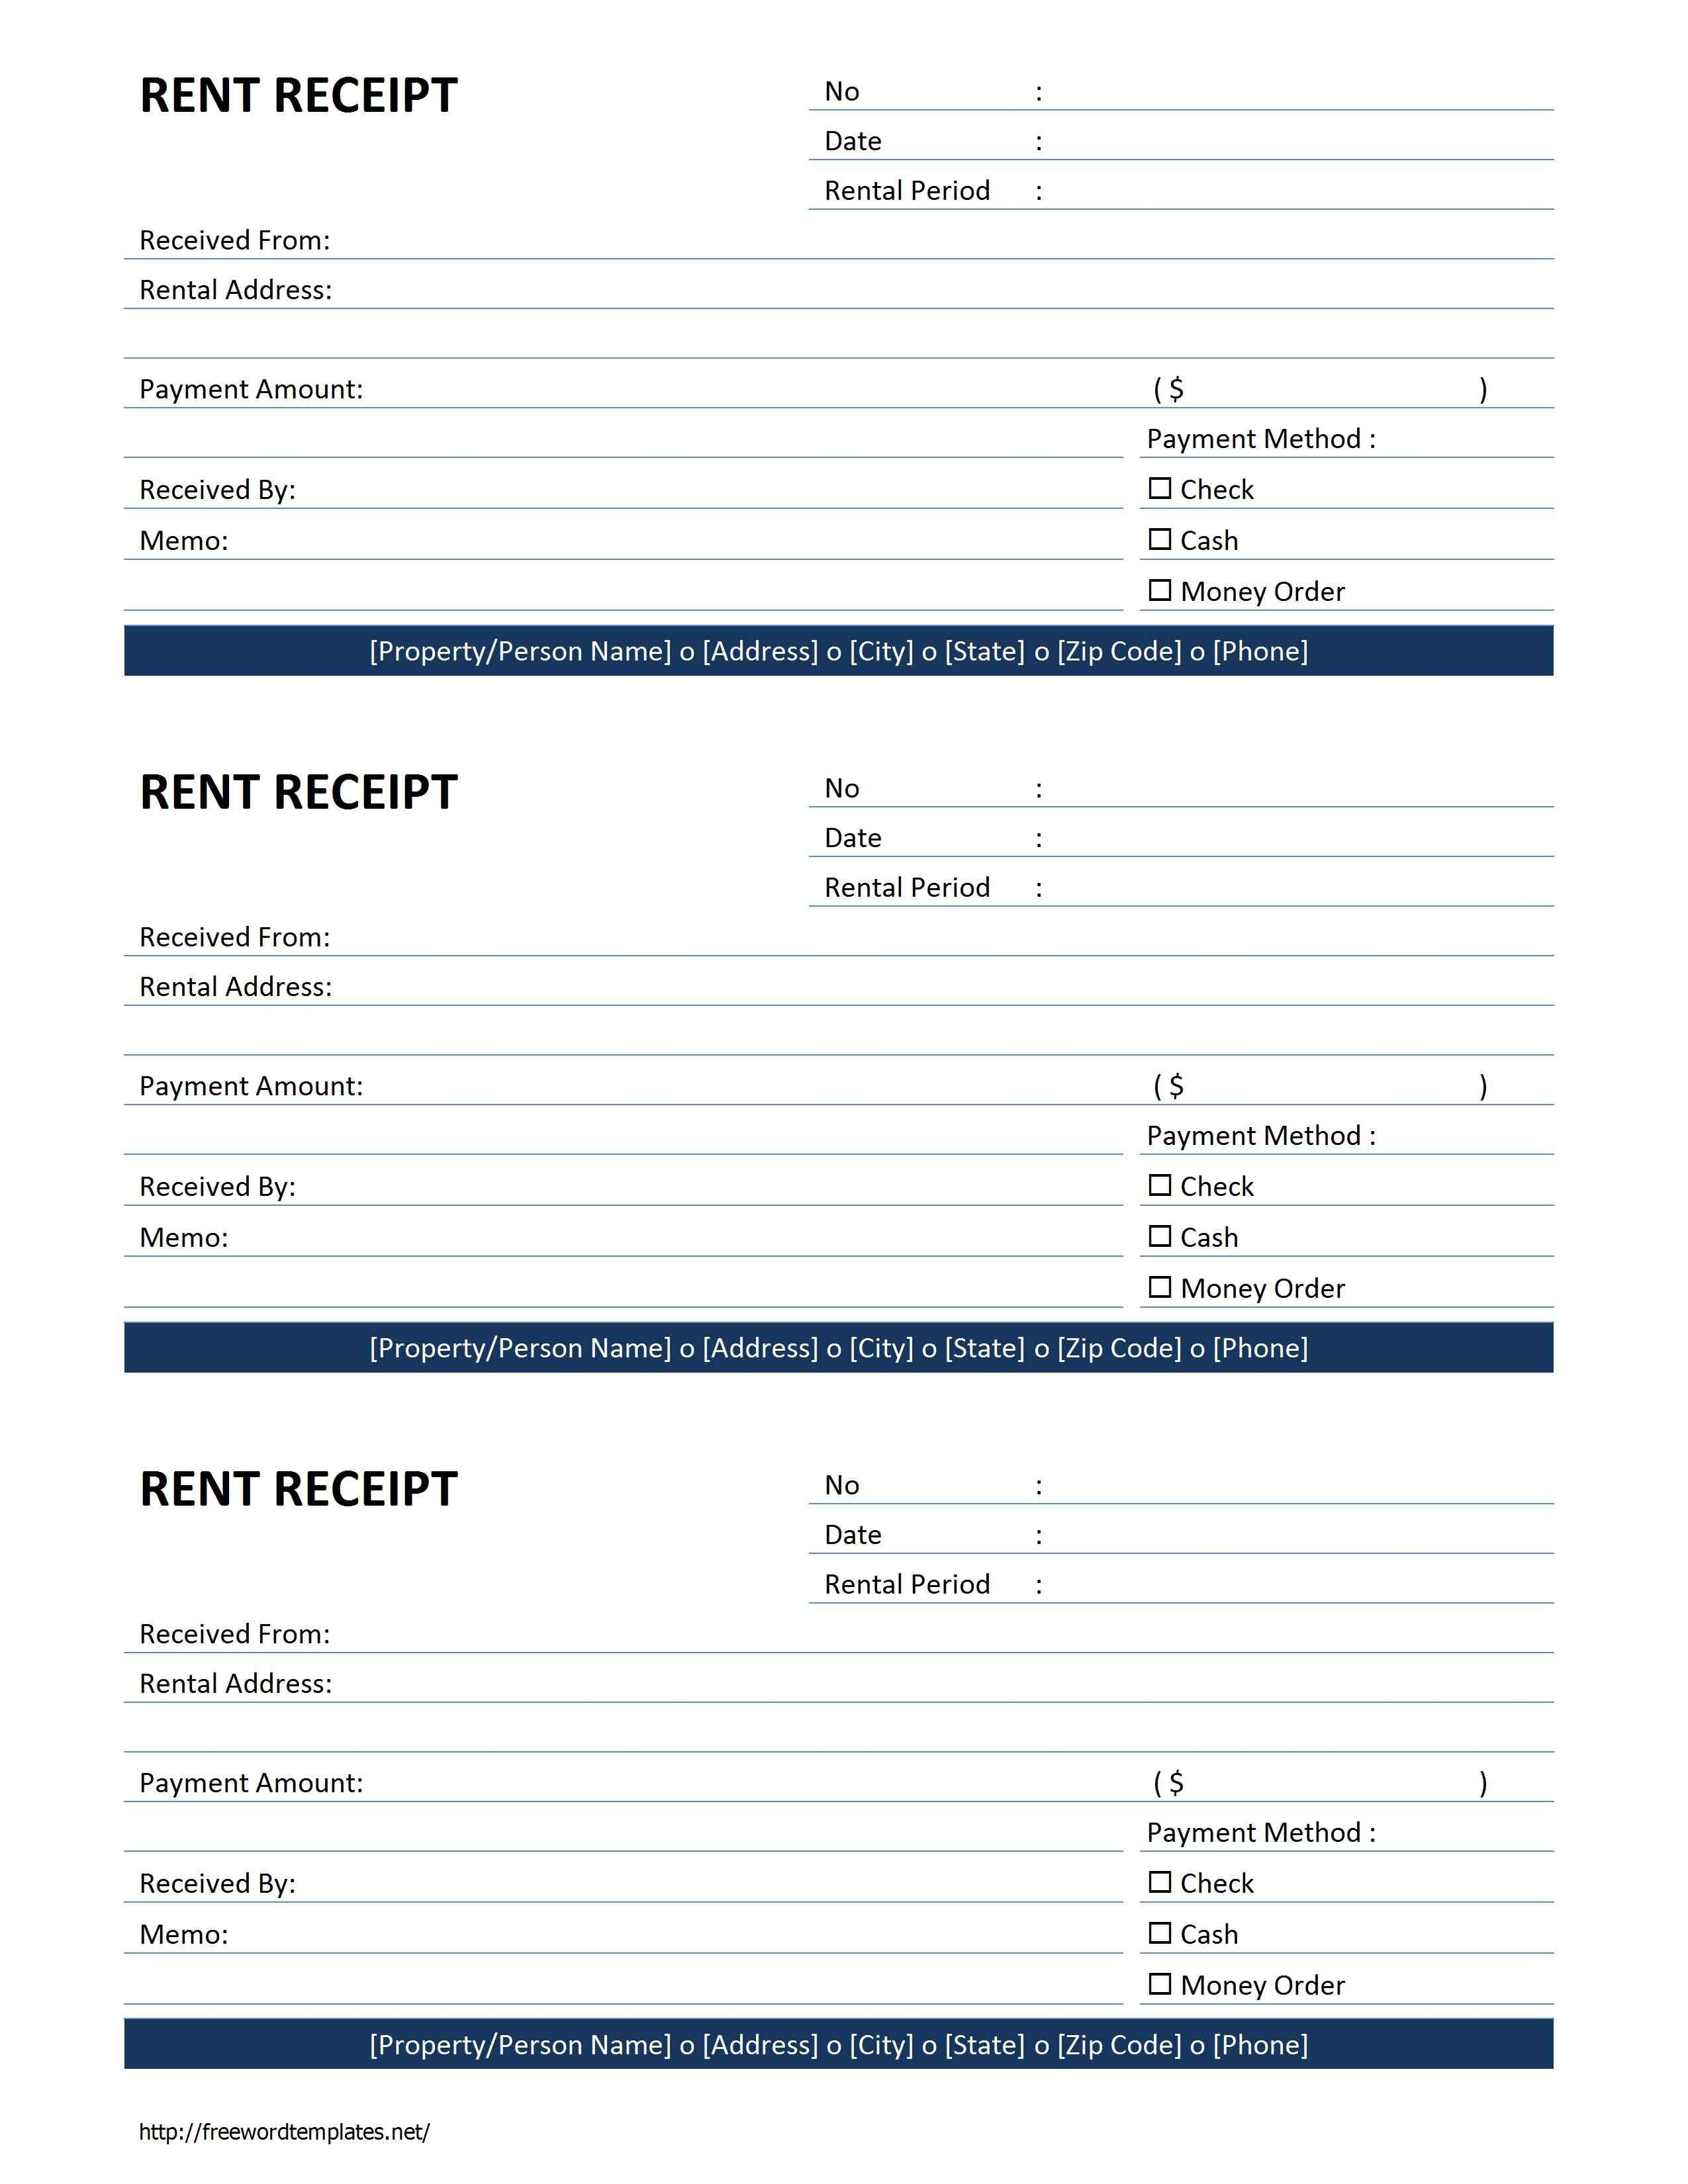 rent receipt template microsoft word templates rent rent receipt template microsoft word templates rent receipt